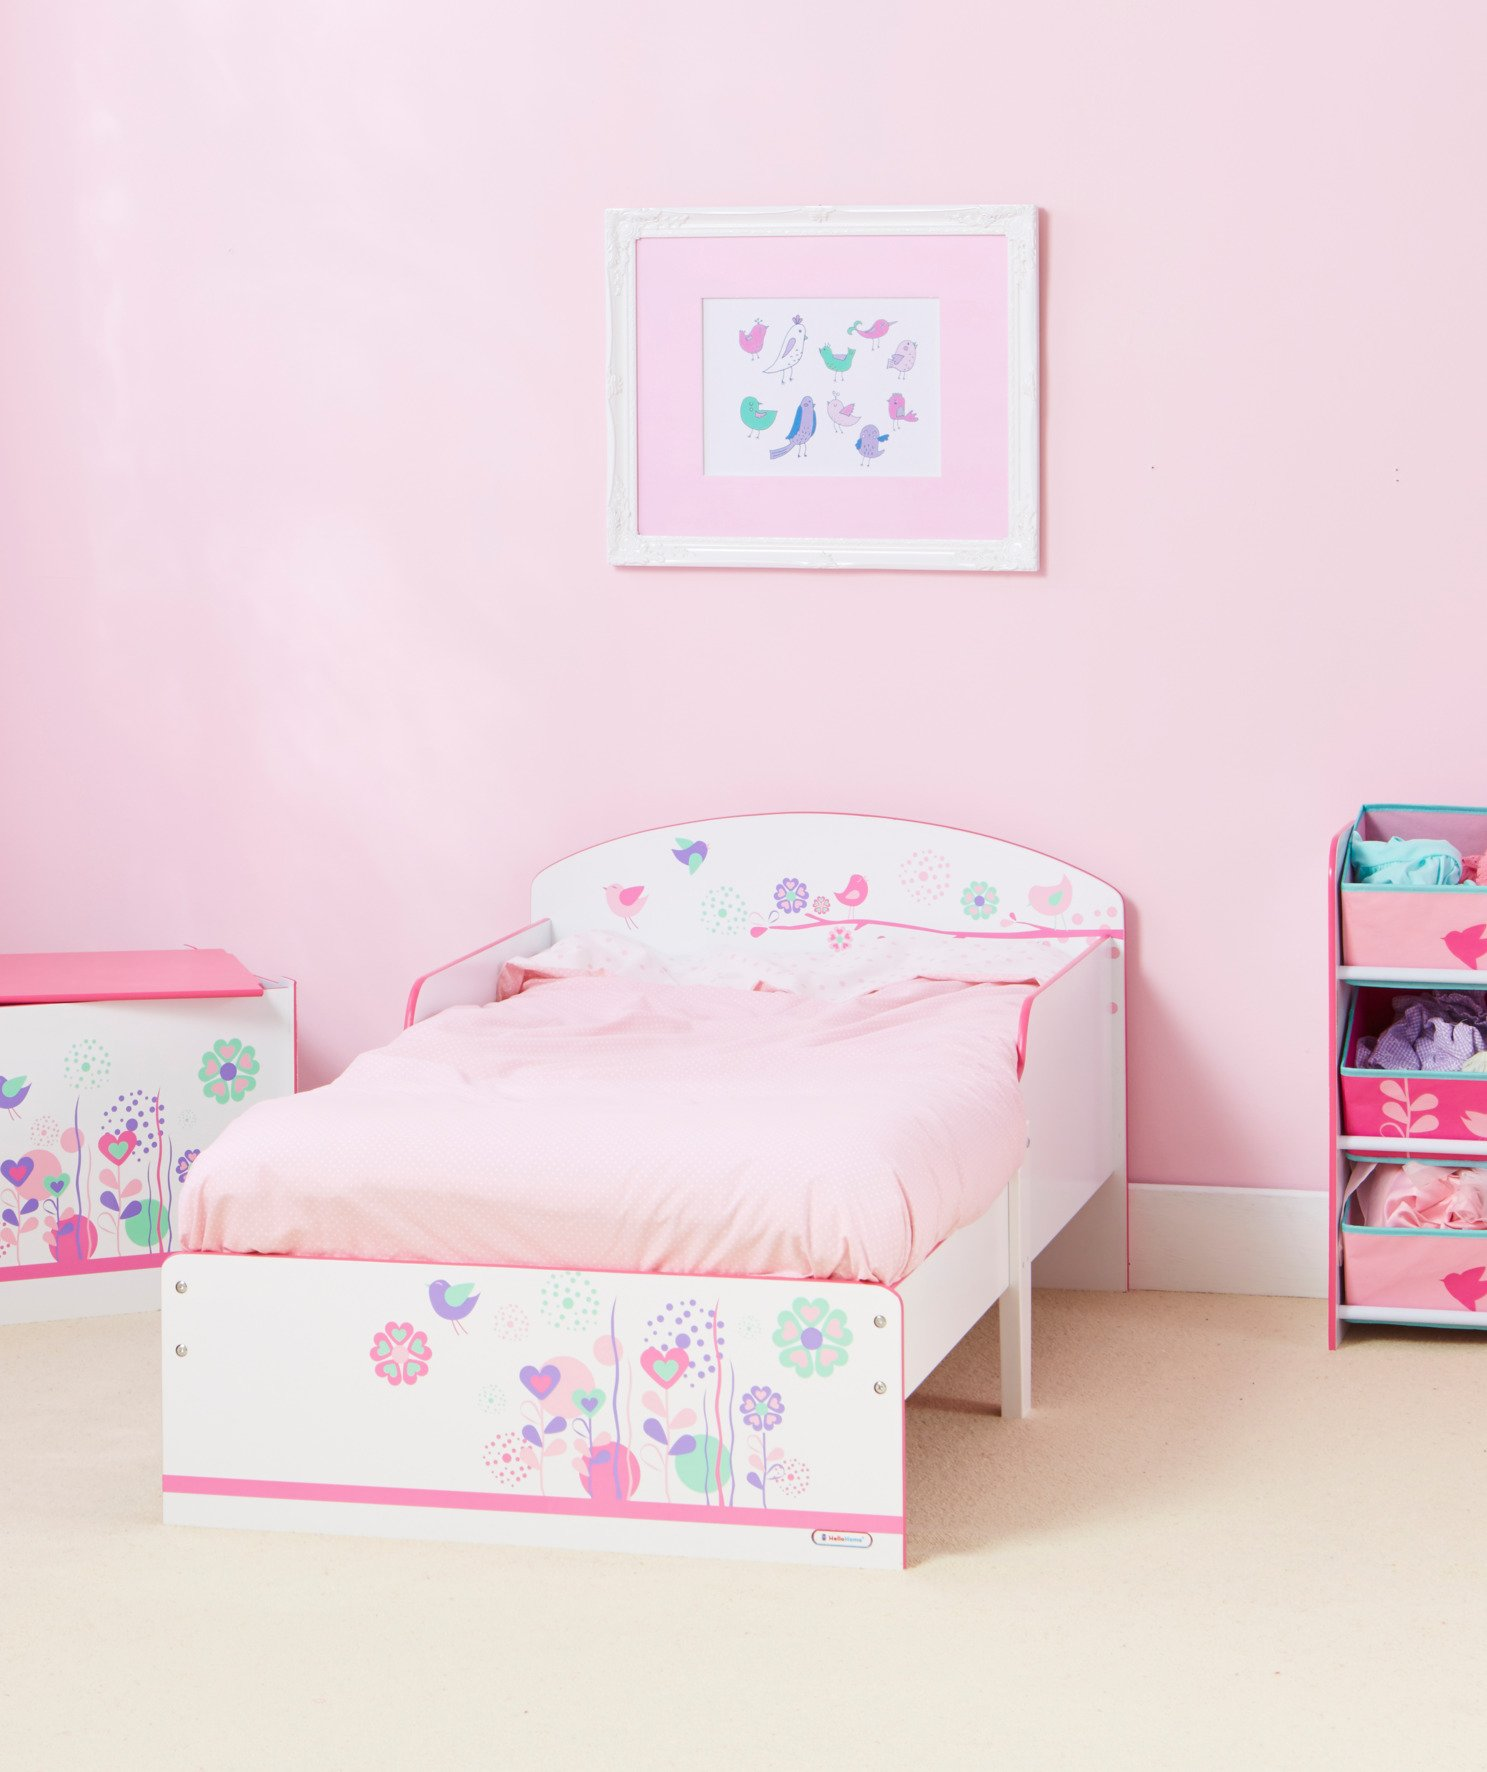 Flowers and Birds Kids Toddler Bed by HelloHome  Ideal transition from cot to bed - make the move to her first big bed magical with the Flowers and Birds toddler bed from HelloHome Takes cot bed size mattress - 140cm (l) x 70cm (w). Mattress not included. Assembled size (h)59, (w)77, (l)142cm Suitable for 18 months to 5 years this pink kids' bed is perfect for your little toddler! 4